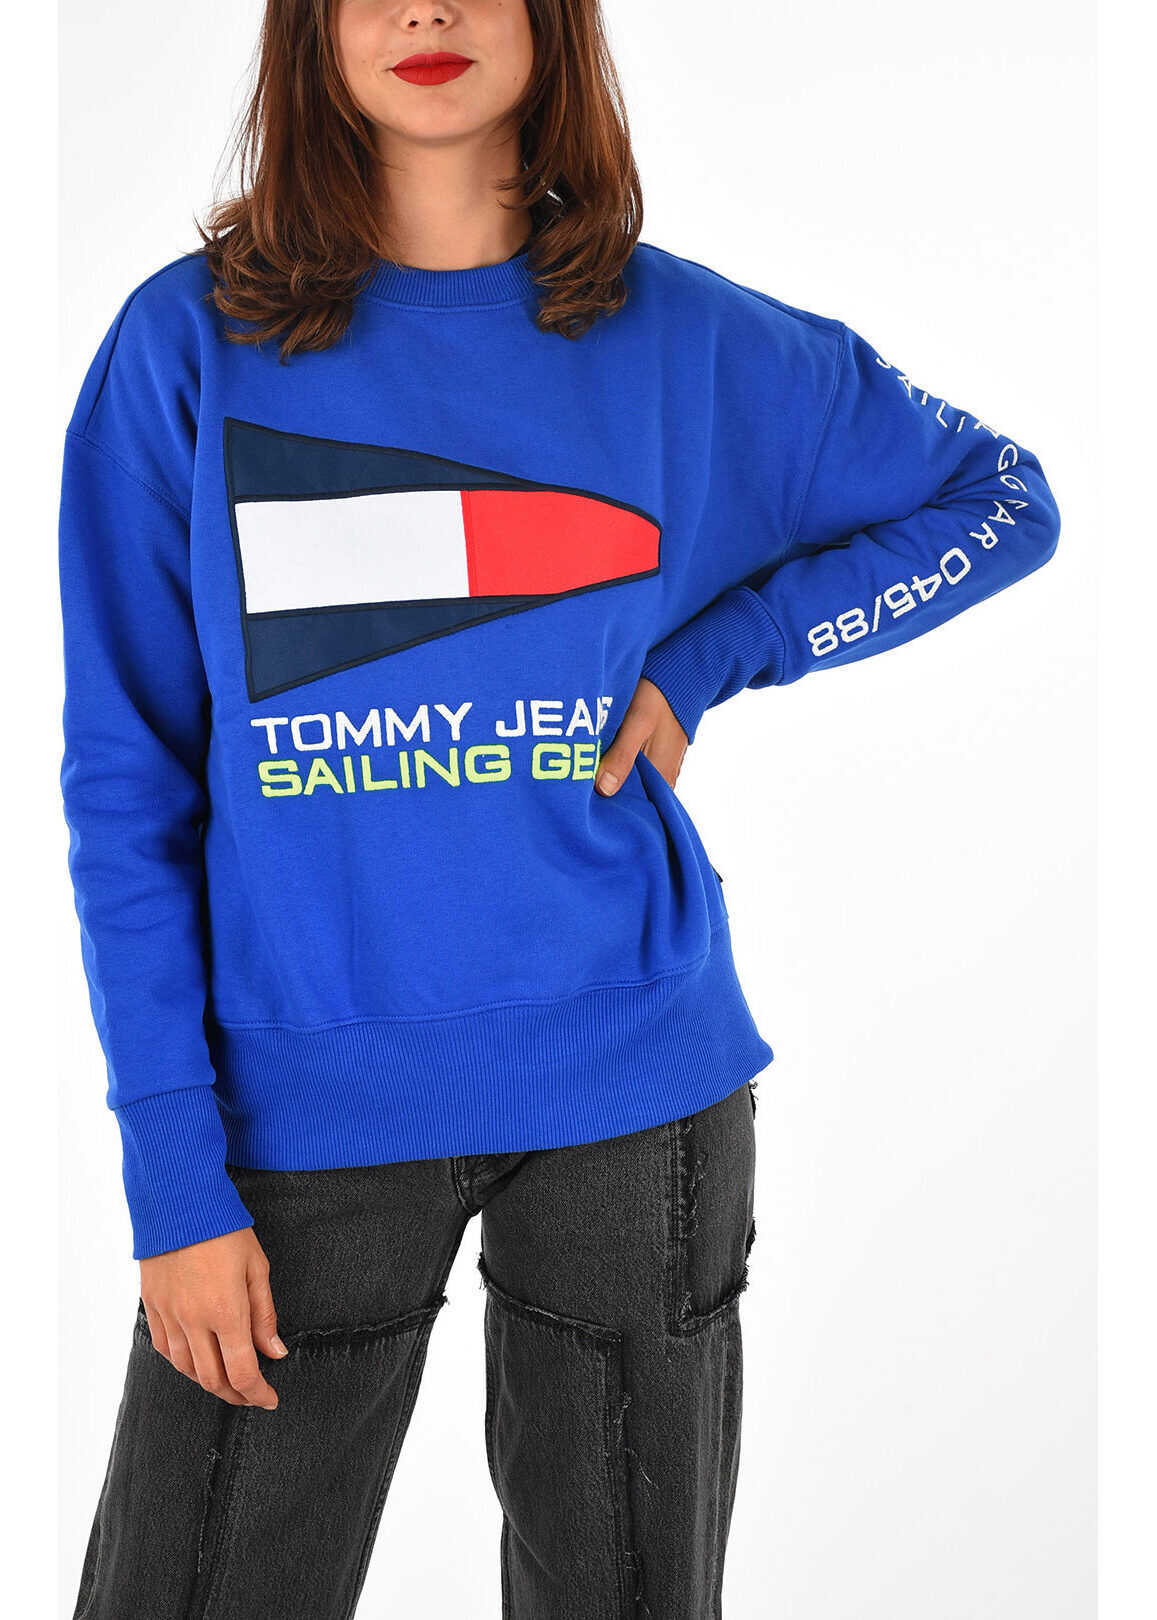 Tommy Hilfiger JEANS Embroidered Sweatshirt BLUE